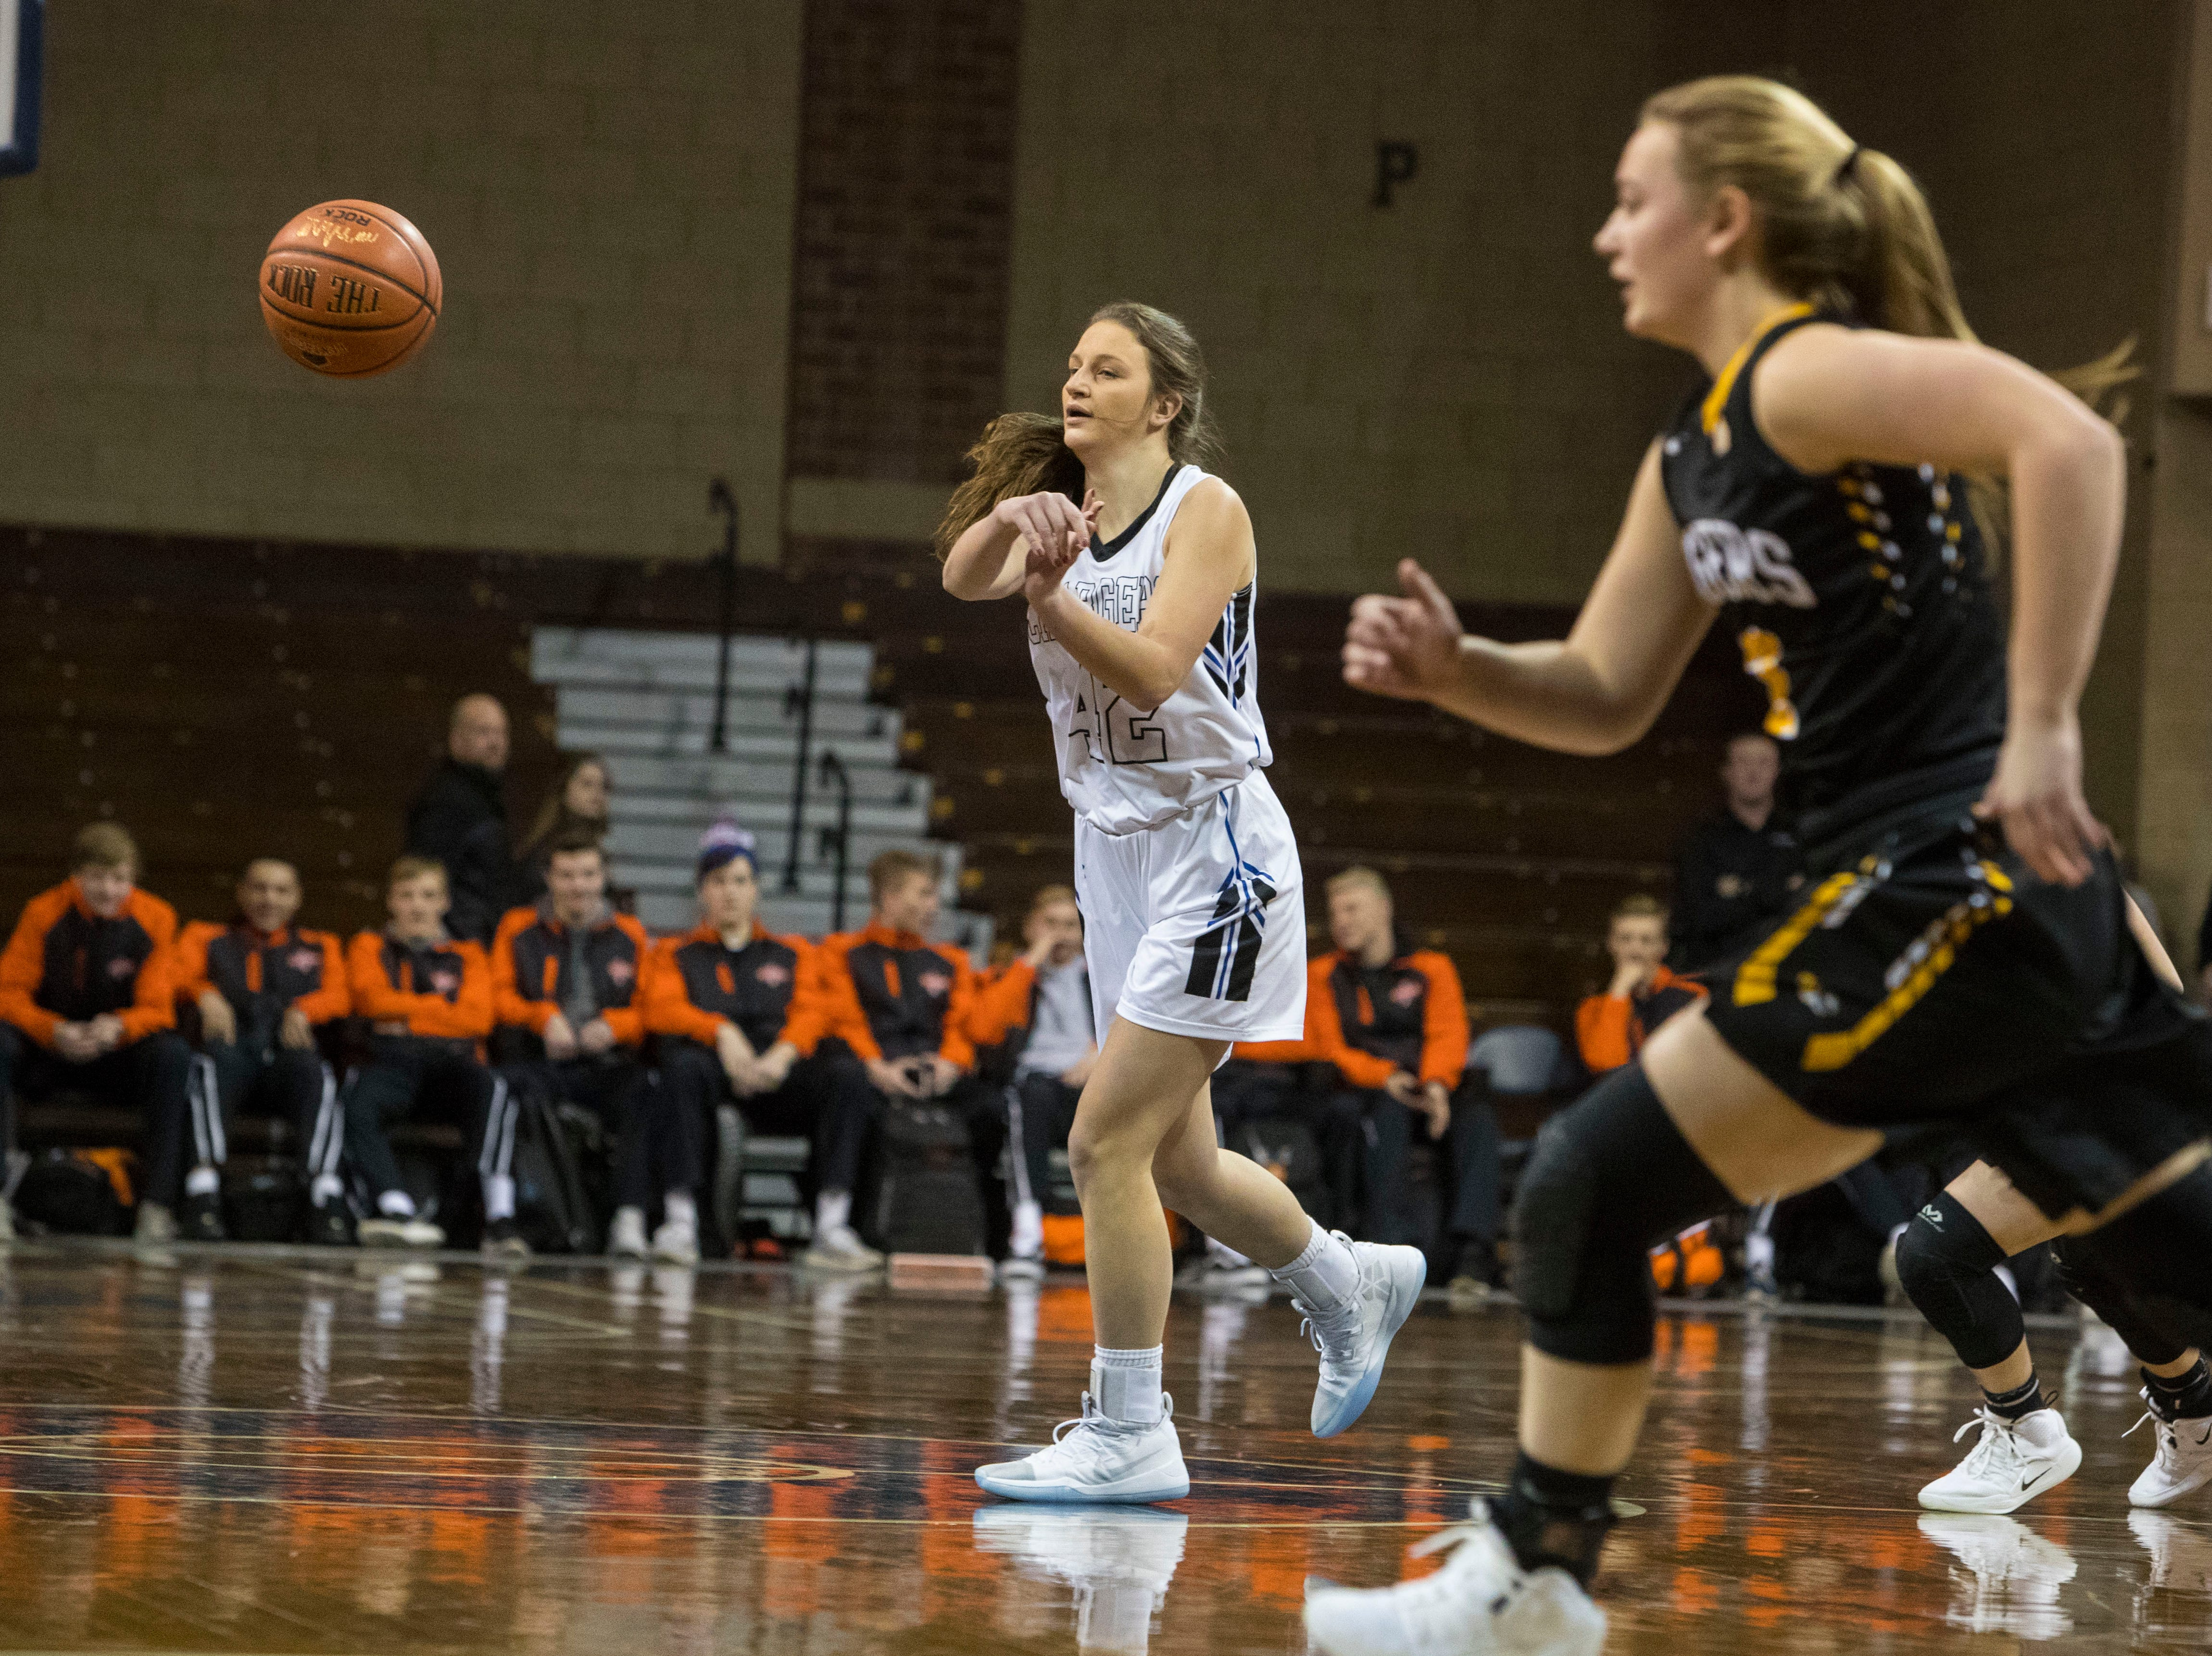 Sioux Falls Christian's Kylee VanEgdom (42) passes the ball during a game against Hutchinson at the Hoop City Classic at the Sanford Pentagon in Sioux Falls, S.D., Saturday, Dec. 29, 2018.